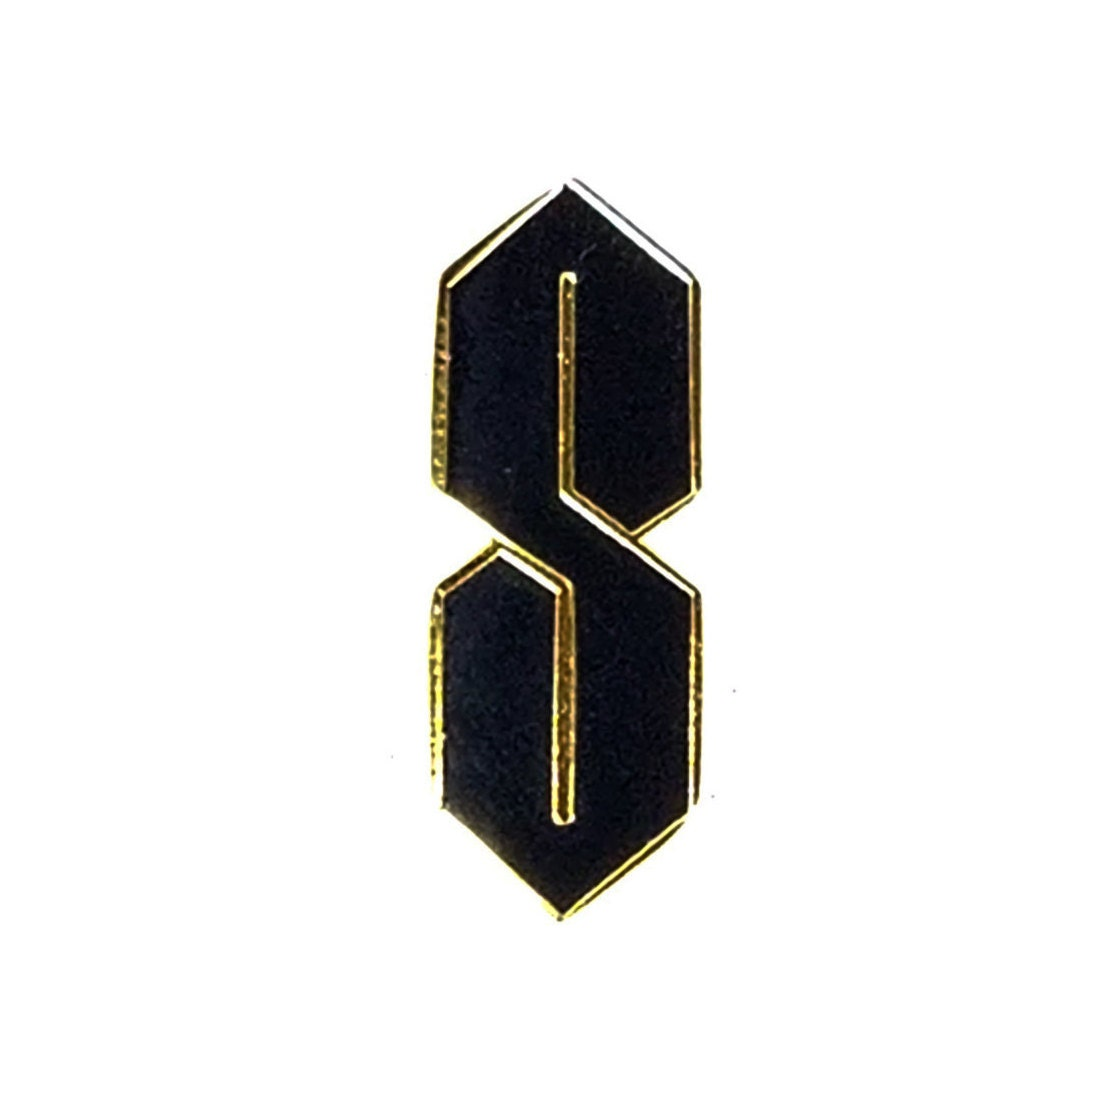 S Symbol S Drawing 90s Pin Super S Stussy S by creepandsew ...